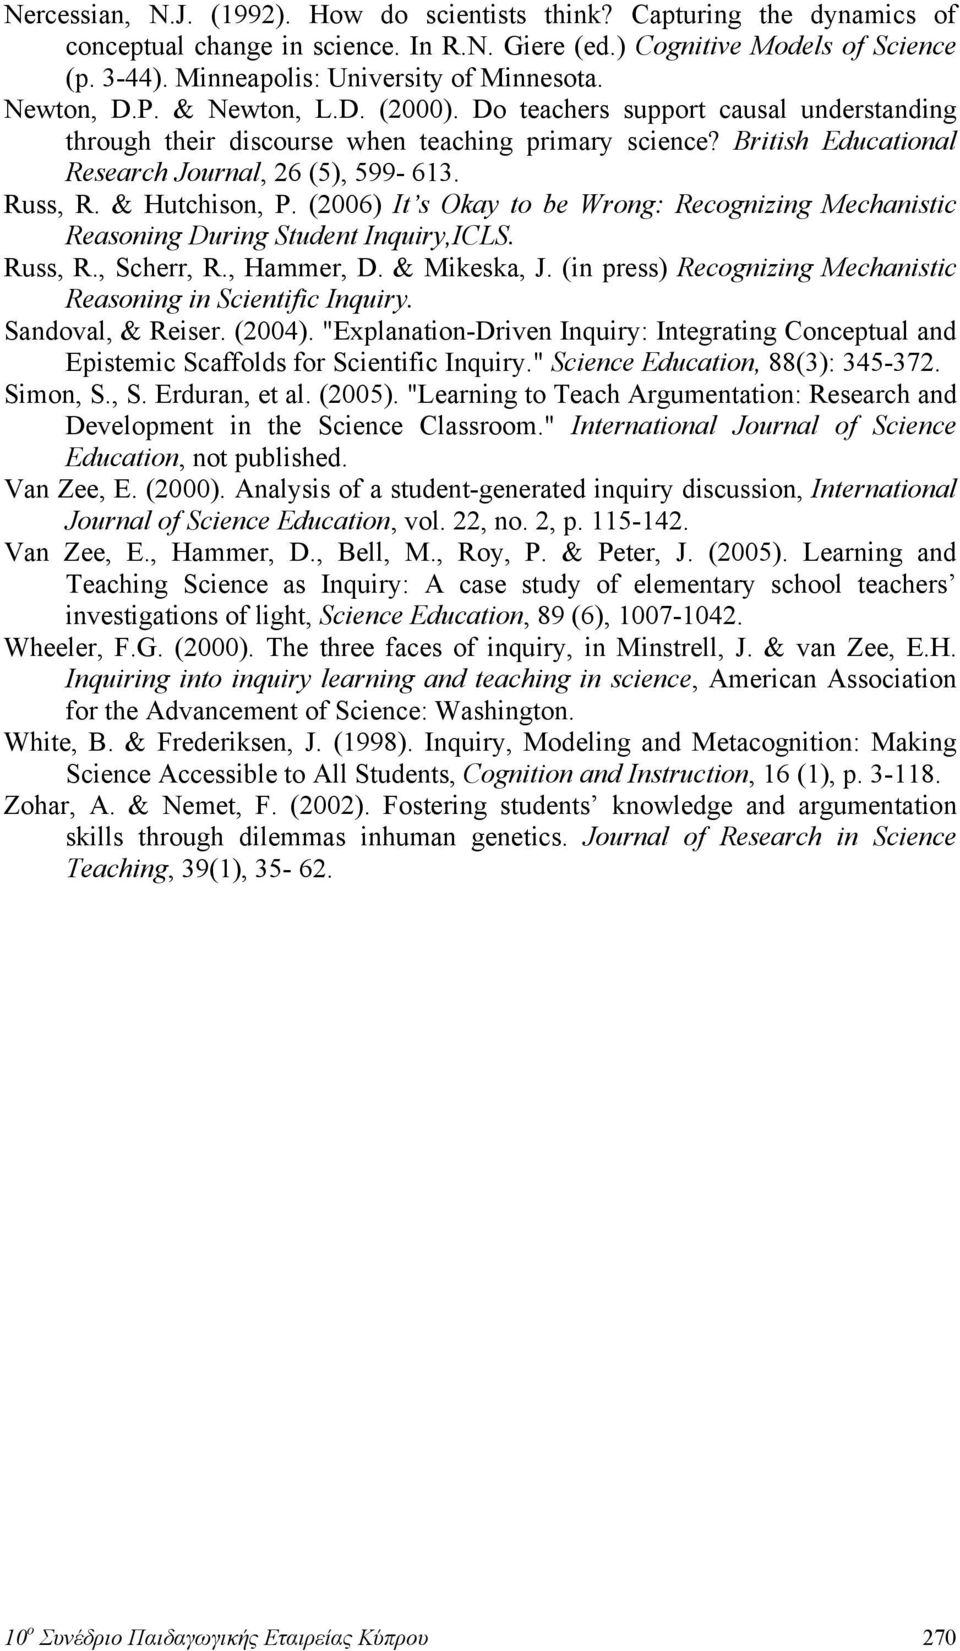 British Educational Research Journal, 26 (5), 599-613. Russ, R. & Hutchison, P. (2006) It s Okay to be Wrong: Recognizing Mechanistic Reasoning During Student Inquiry,ICLS. Russ, R., Scherr, R.